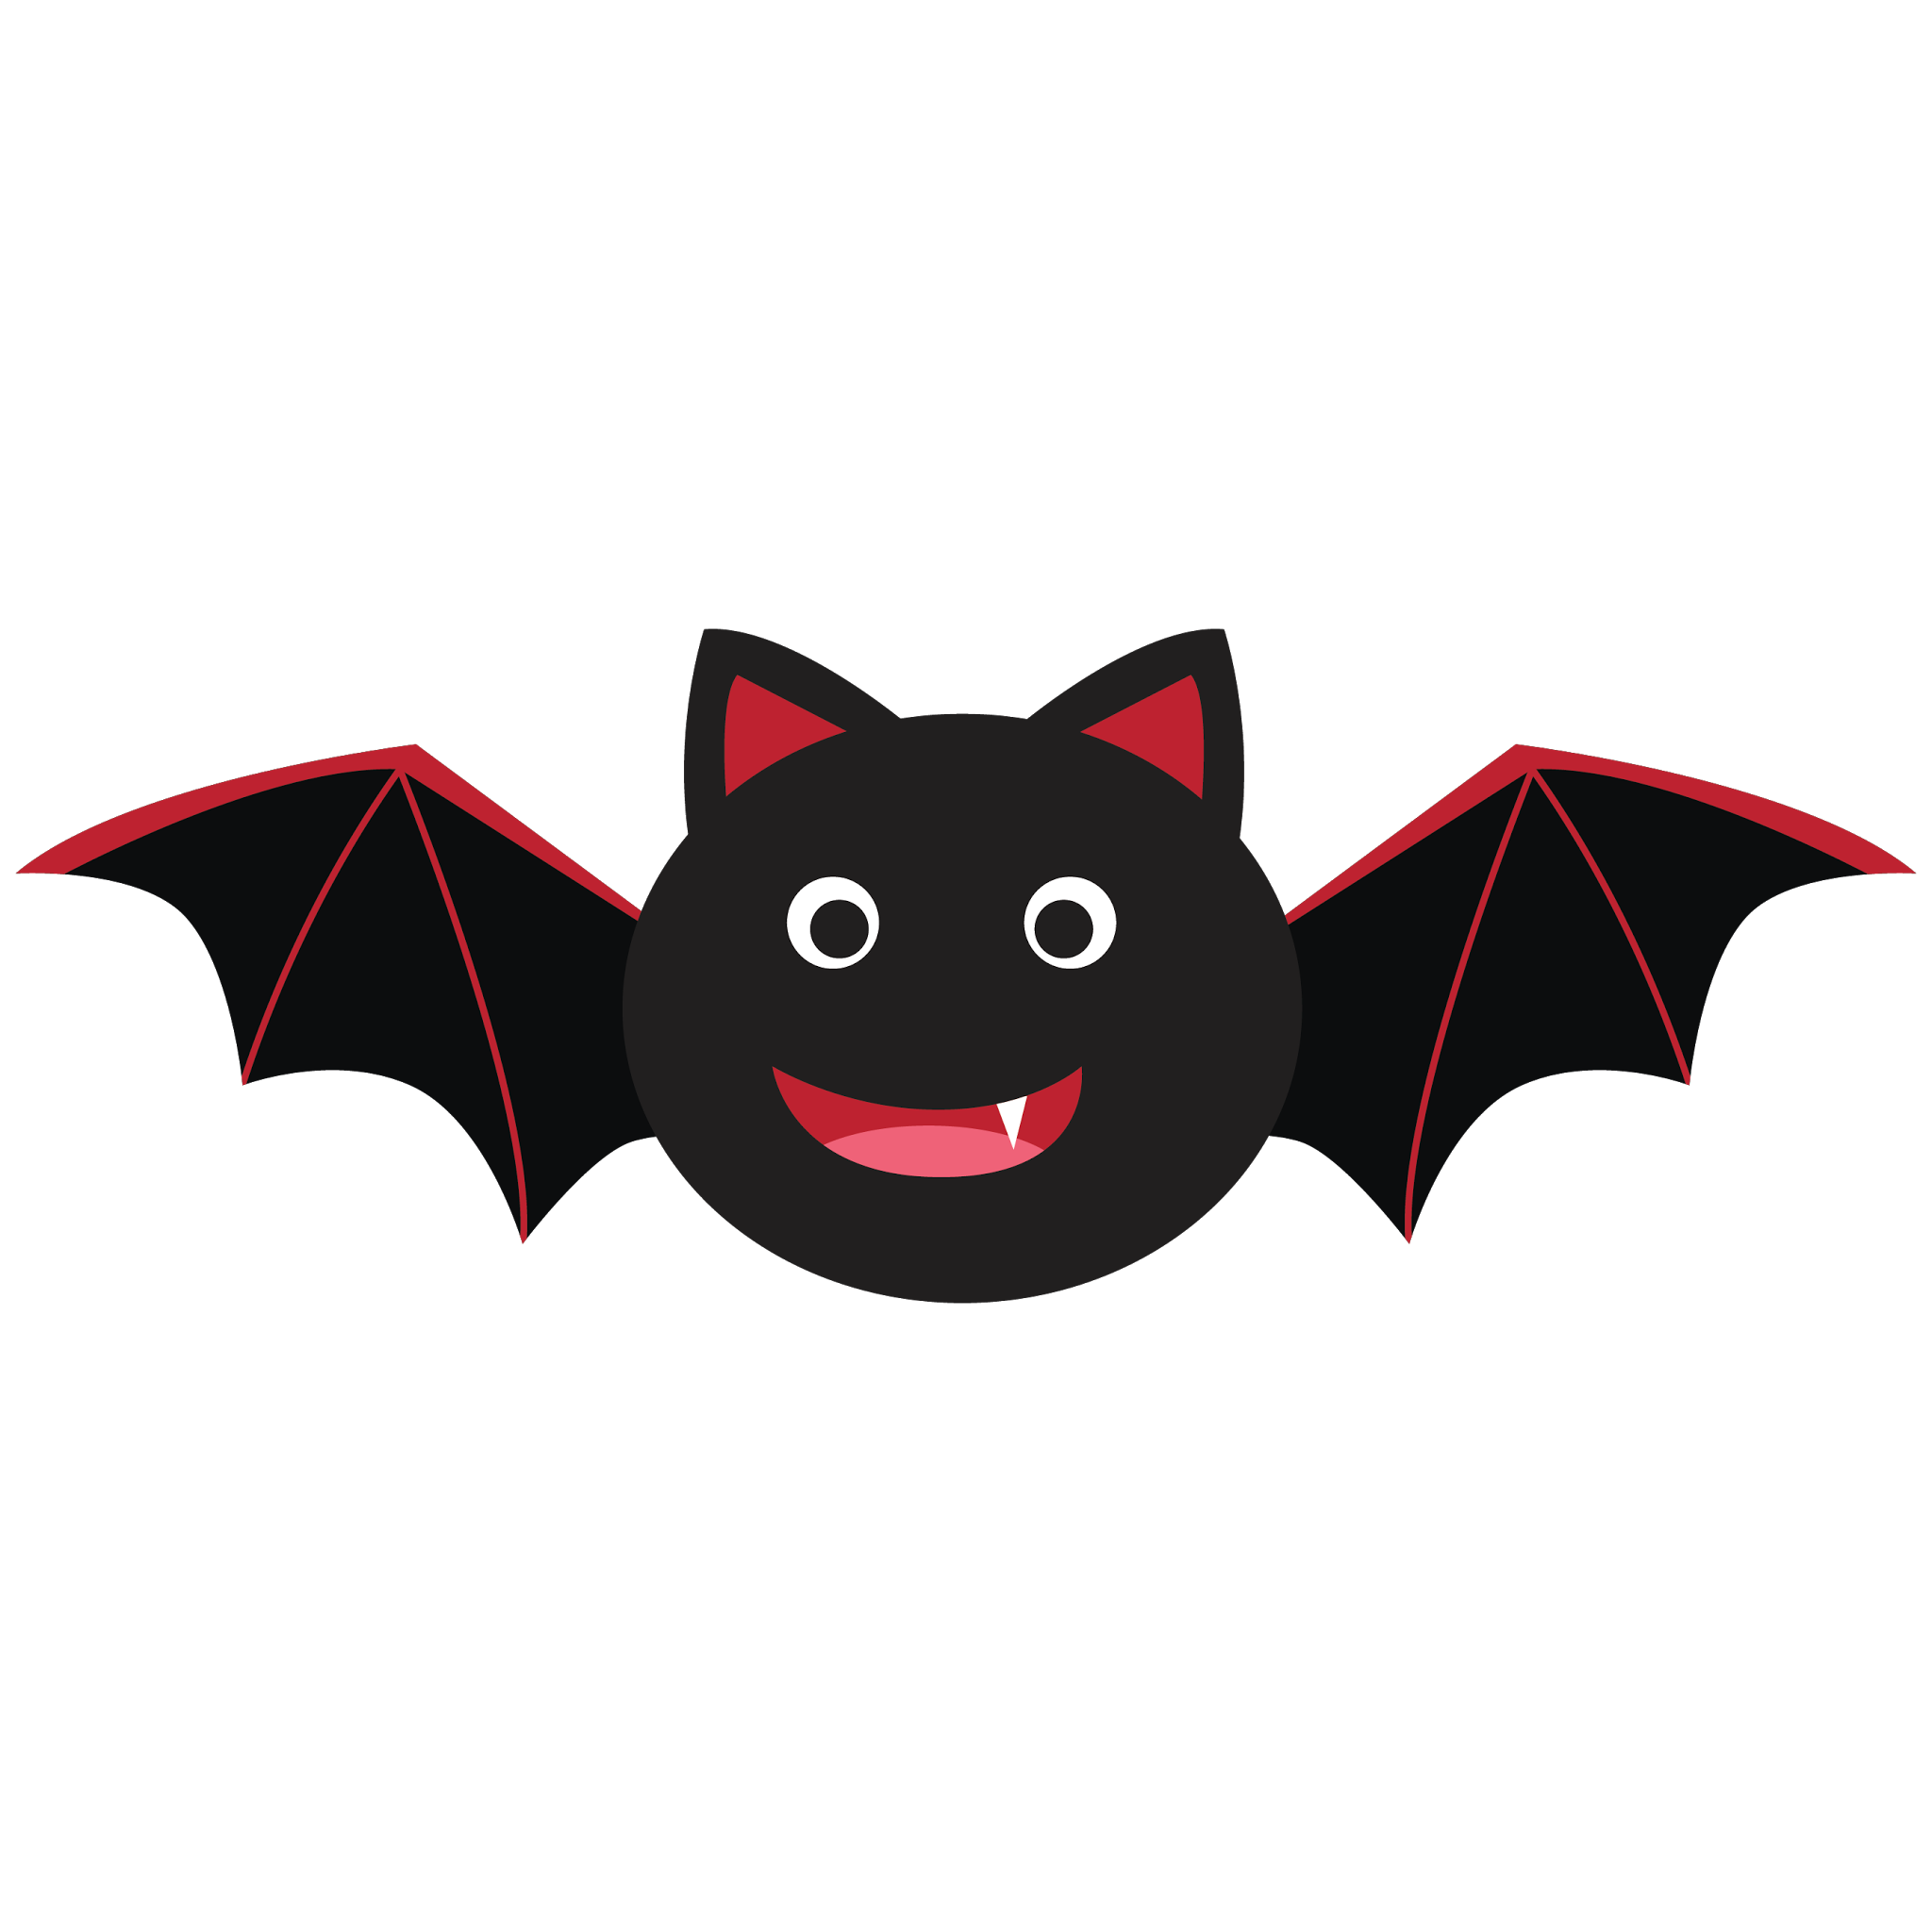 Cute Bat Clipart #1-Cute Bat Clipart #1-11